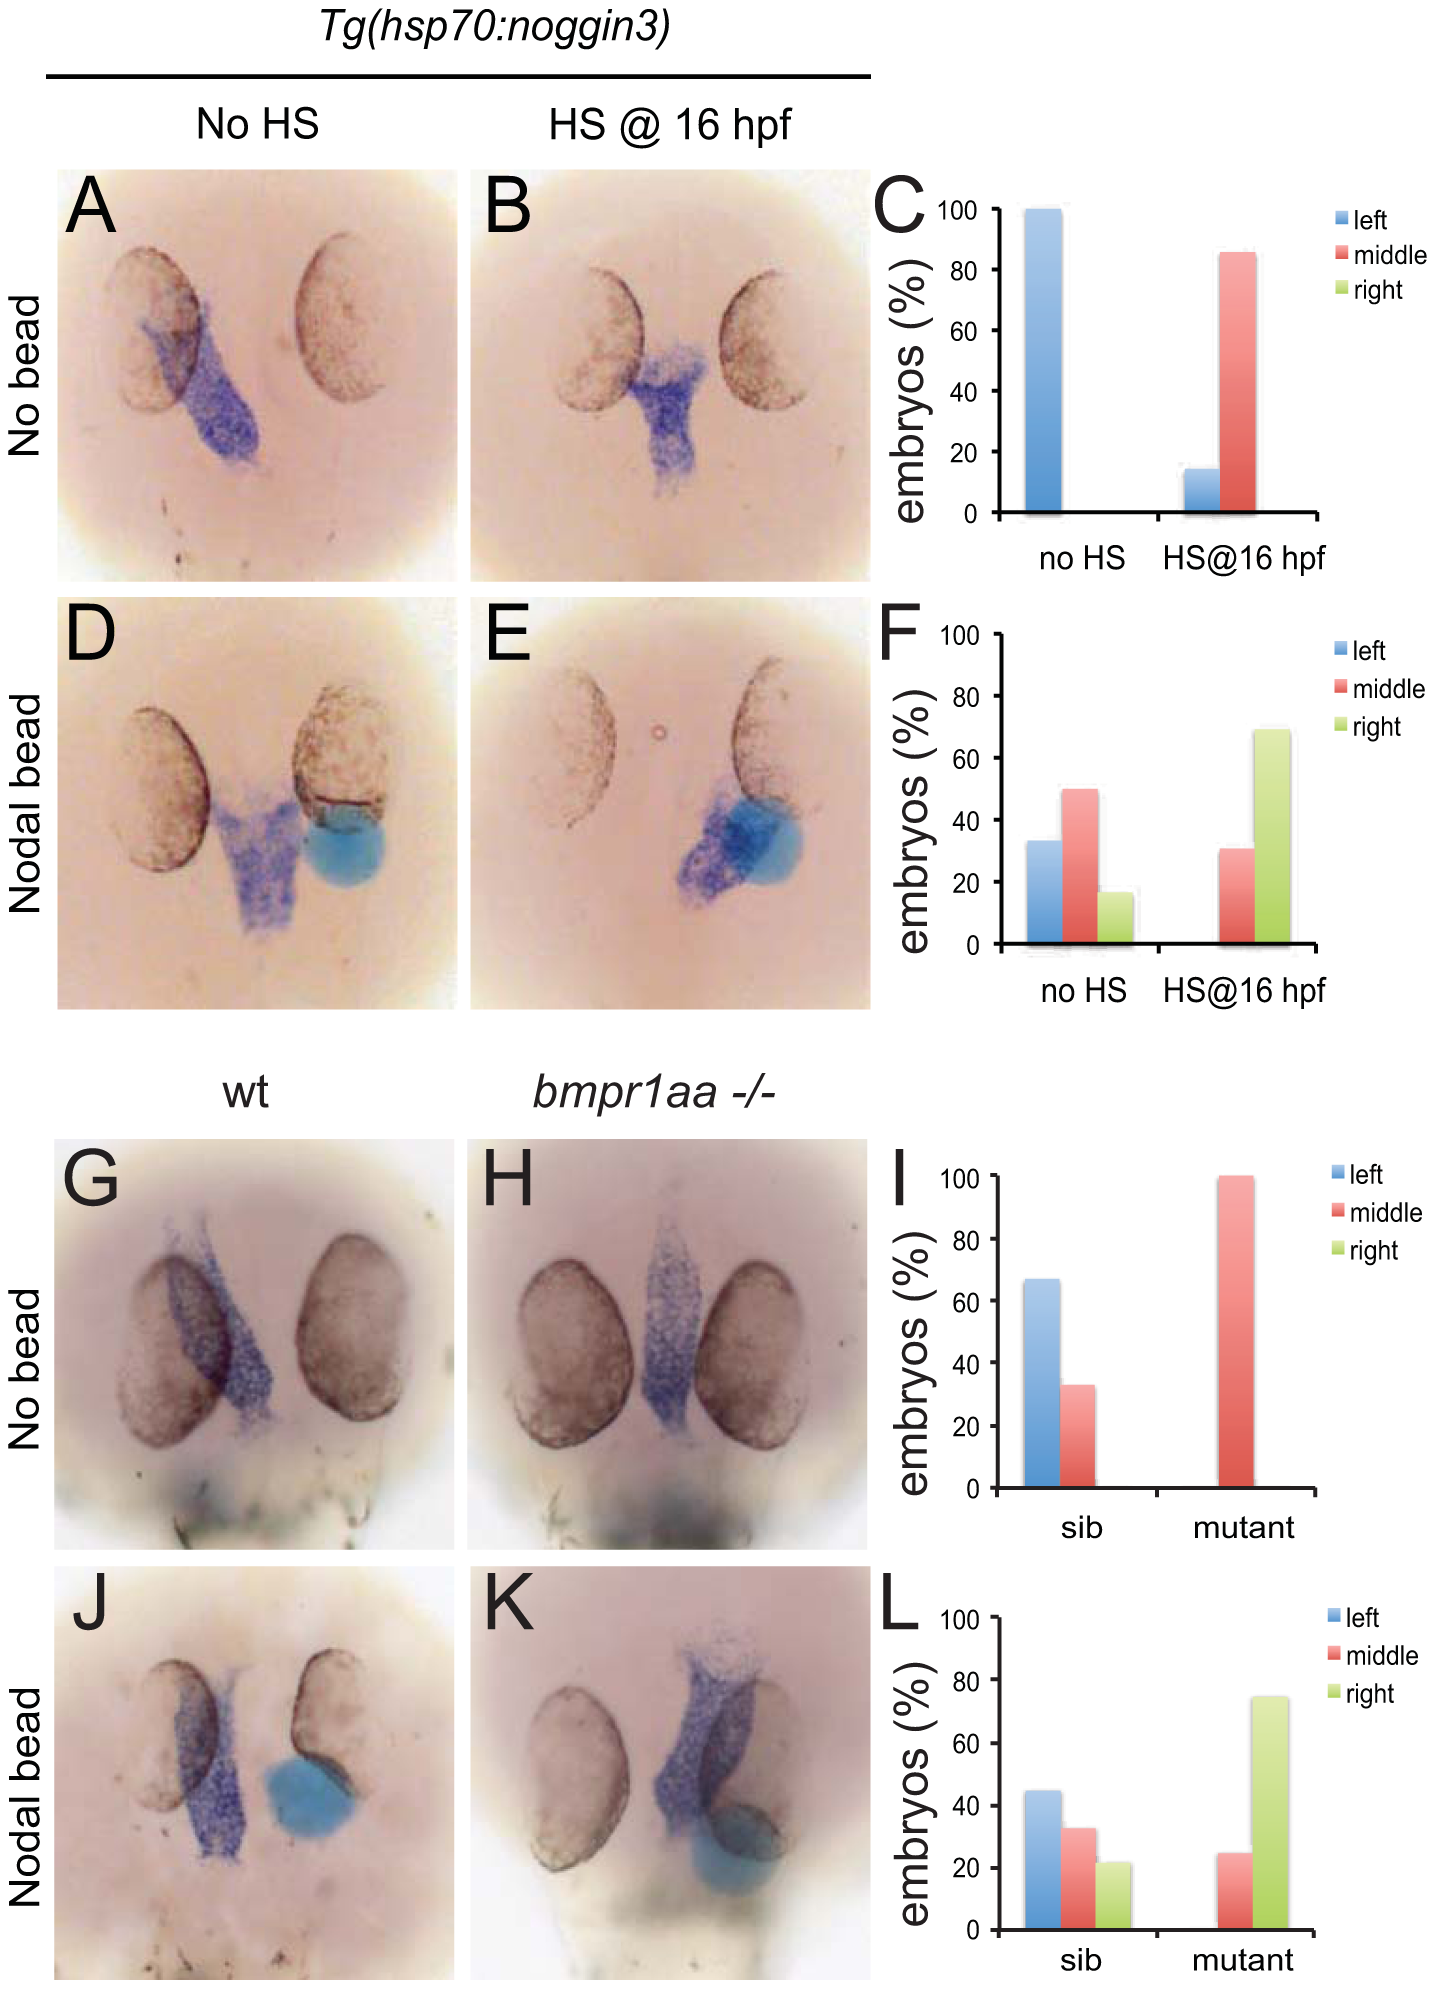 Rescue of Bmp-related cardiac laterality defects by Nodal beads.